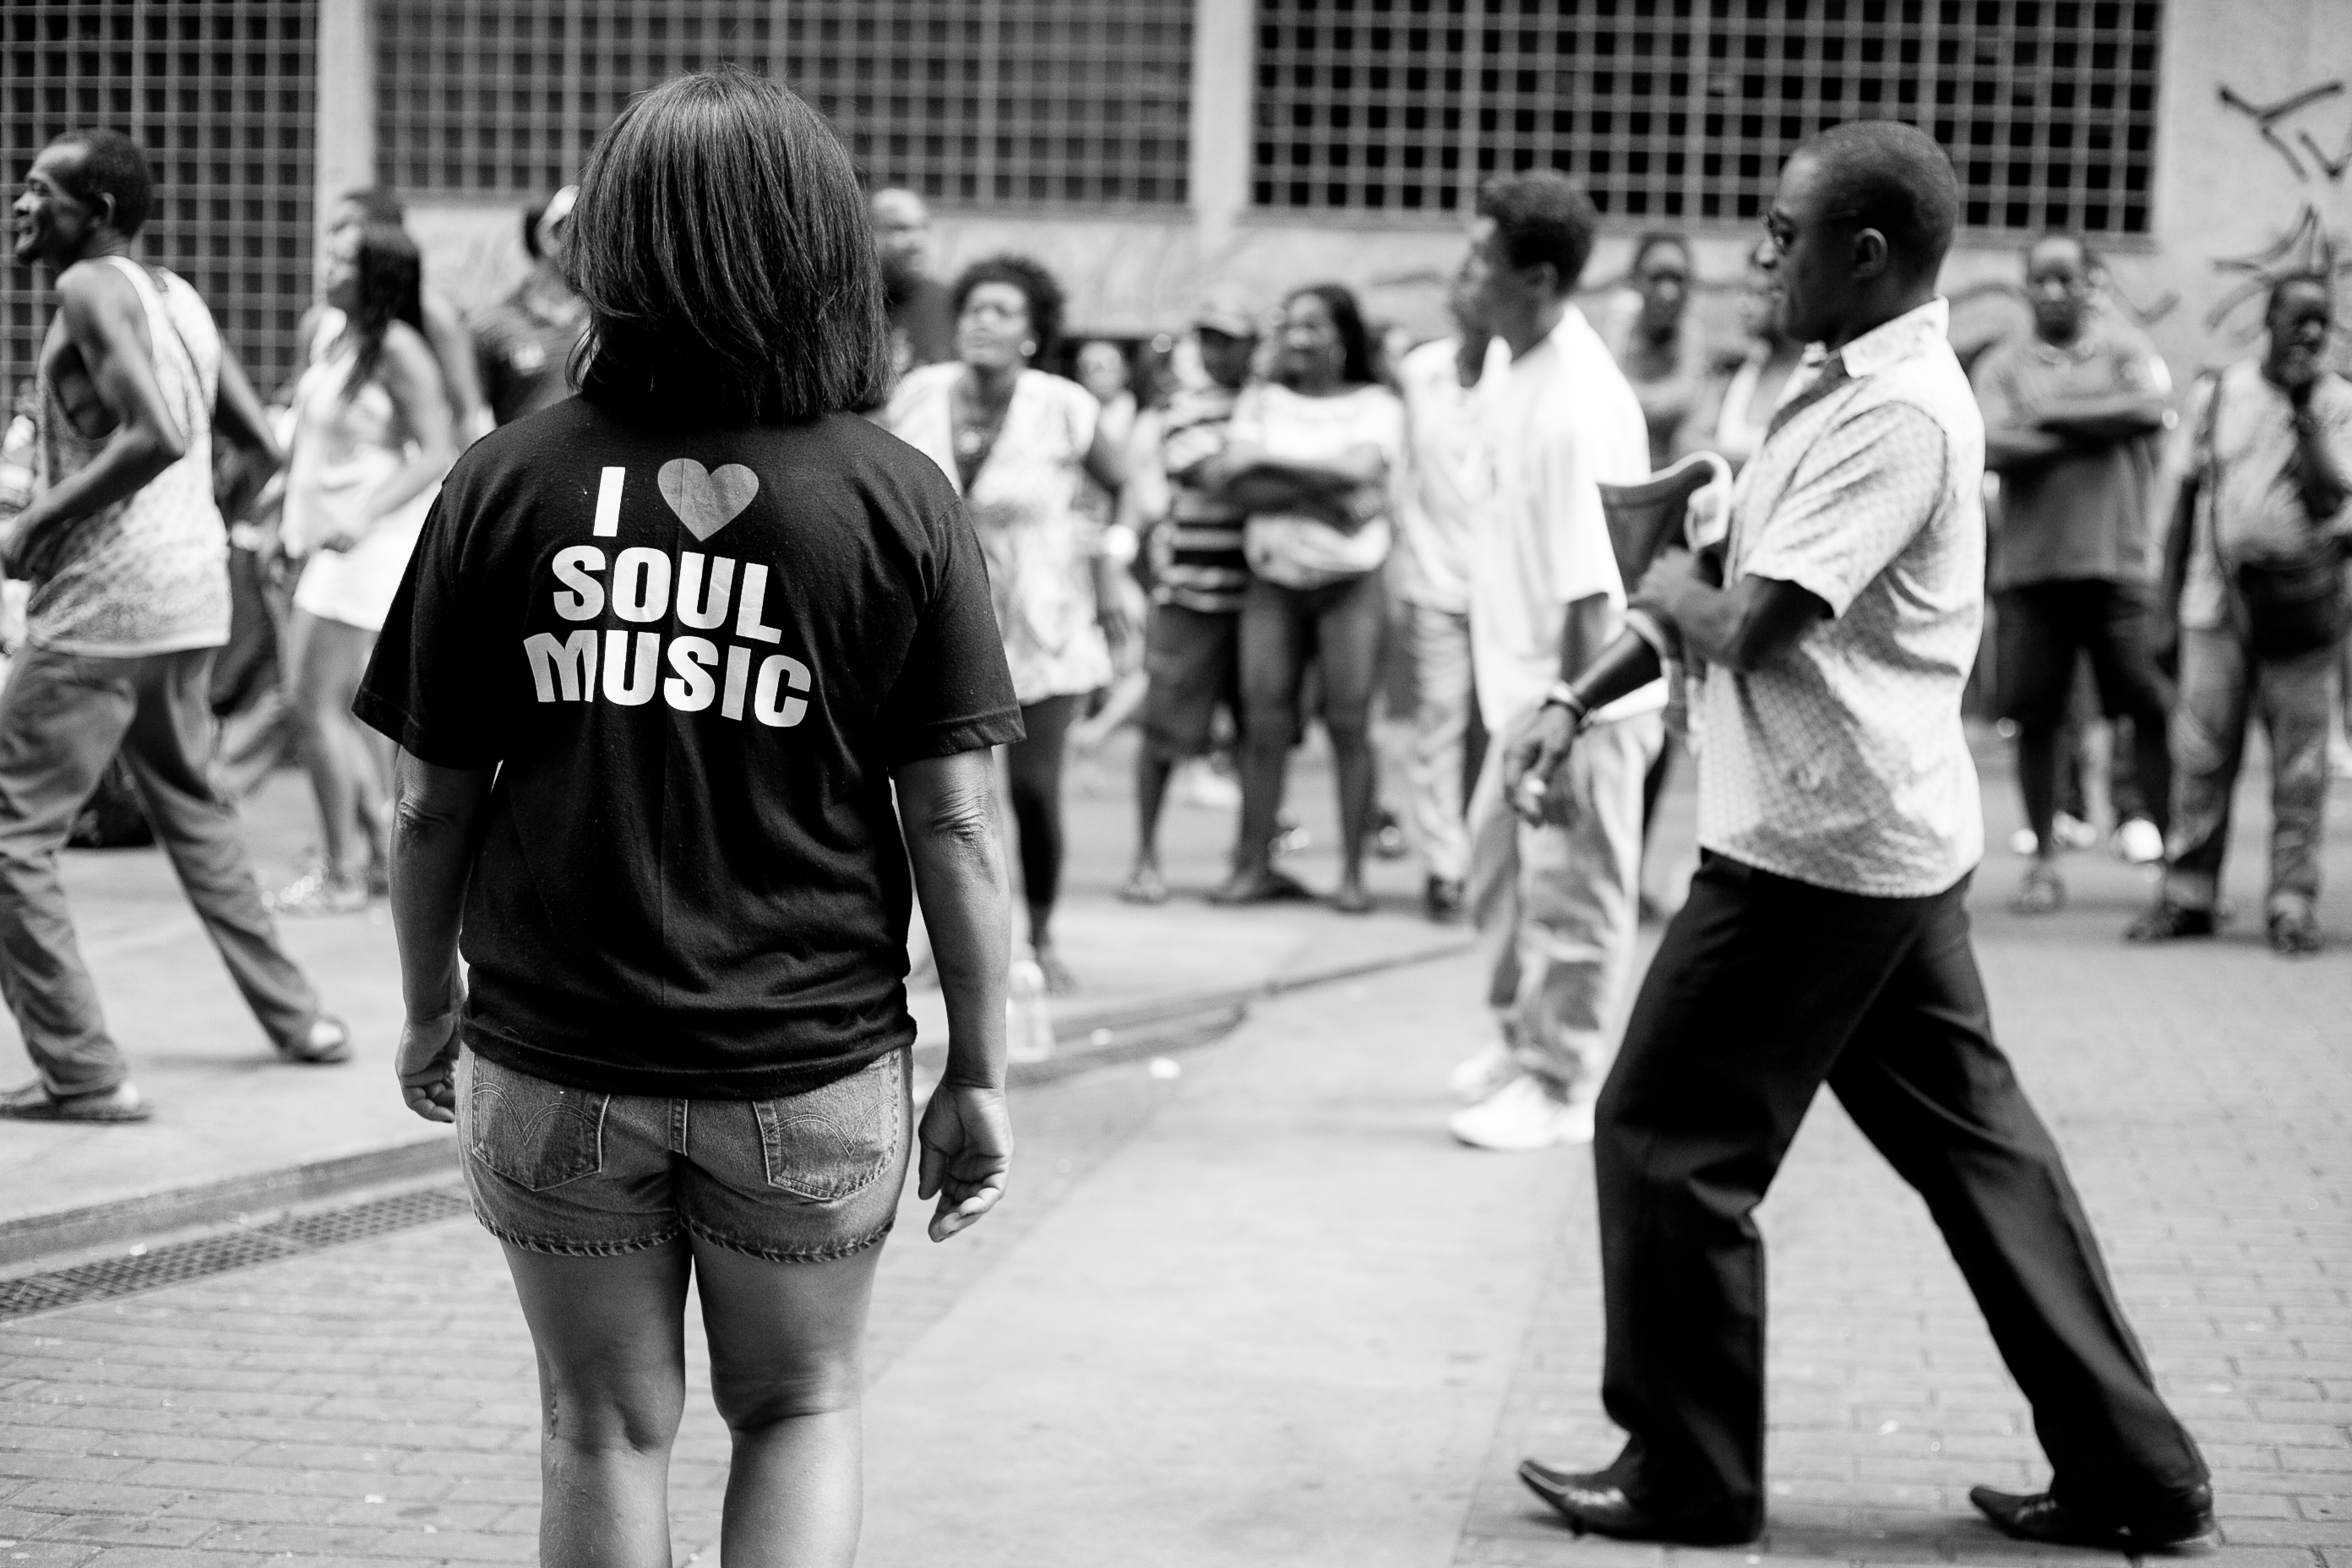 soul music, black soul, quarteirão do soul, movimento soul